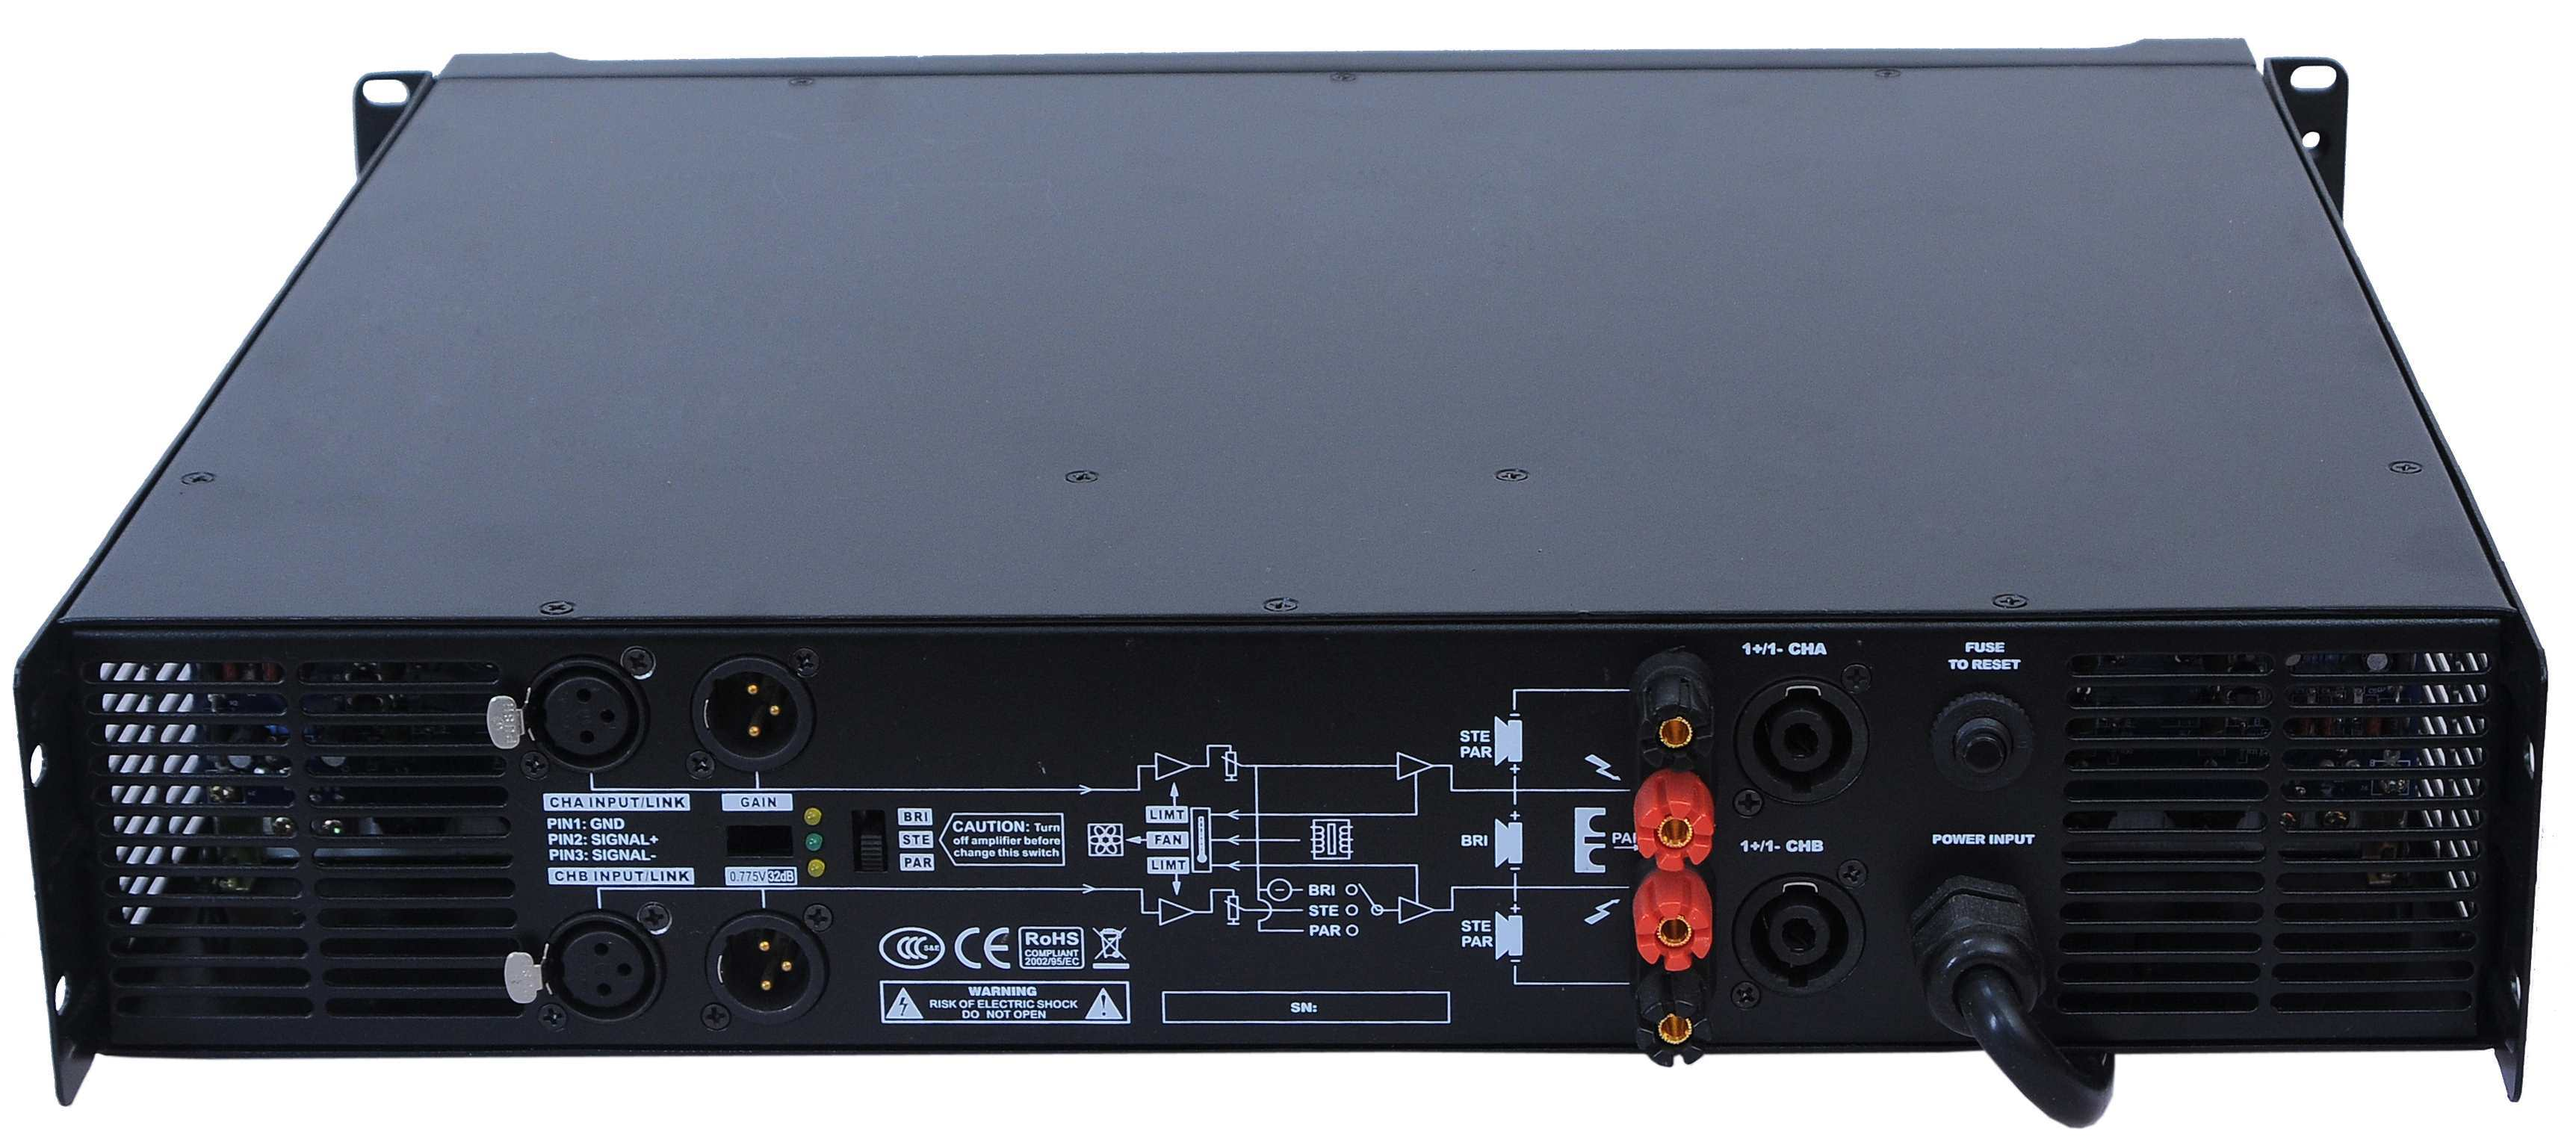 PA Series, High Power Professional Amplifier, 2u